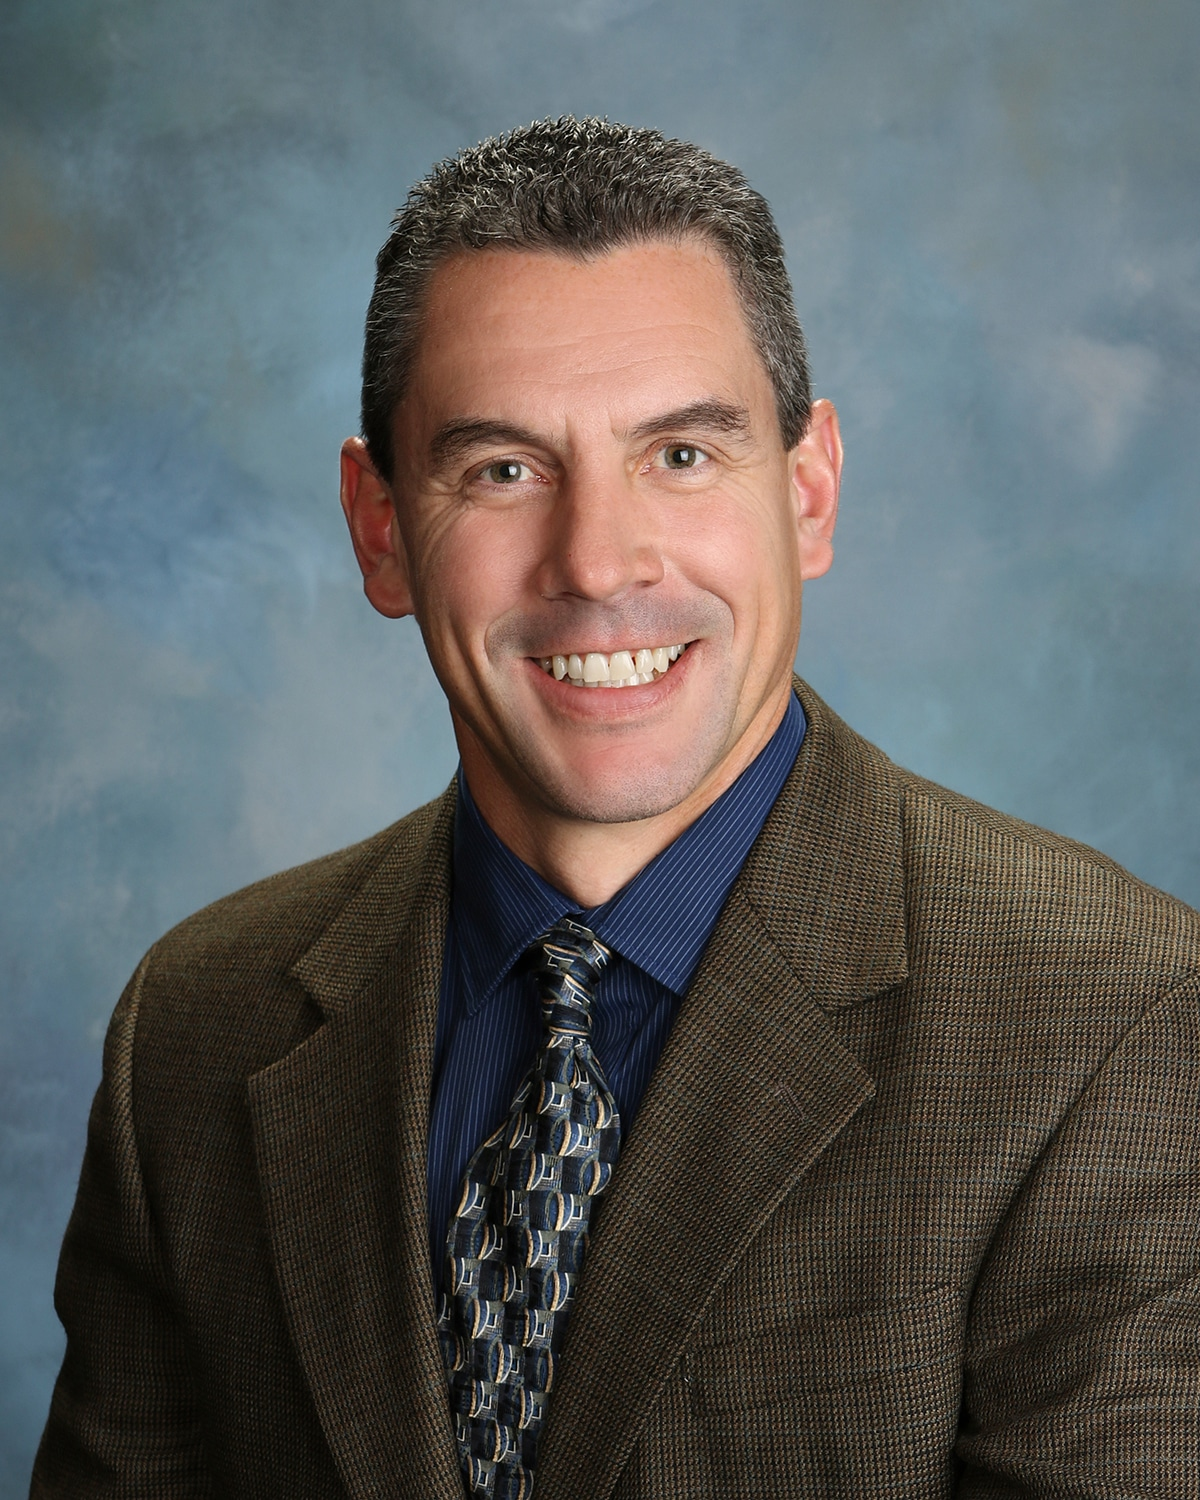 NATM Appoints ASA VP to Lead Technology Committee